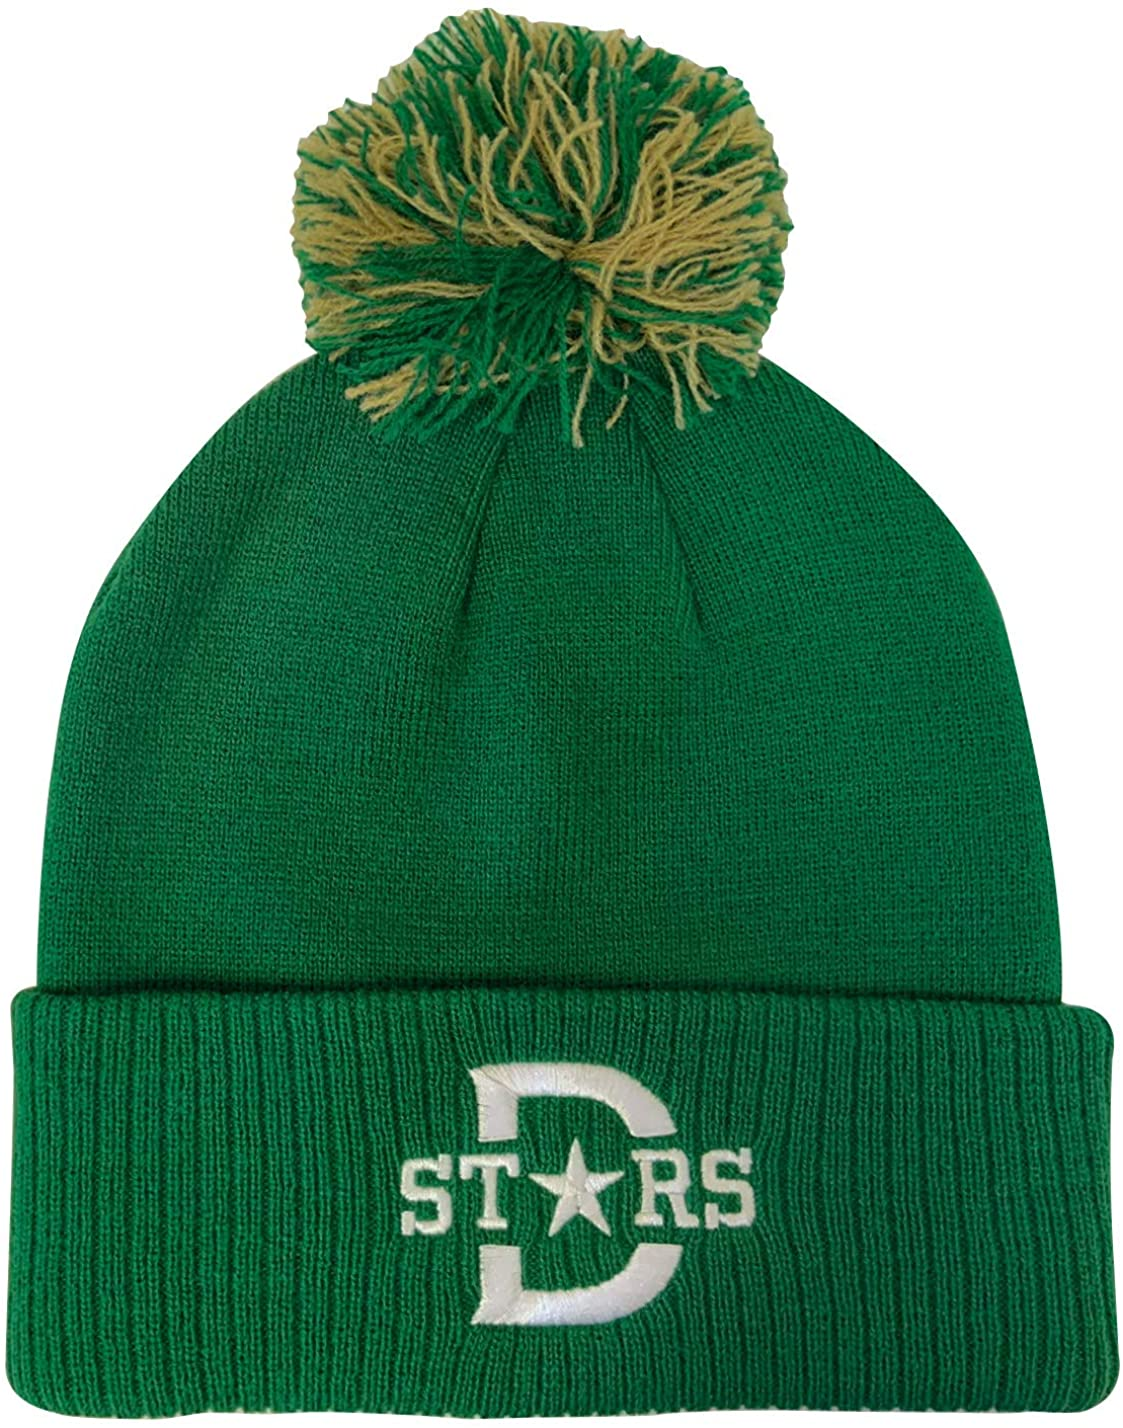 adidas Mens Dallas Stars 2020 Winter Classic Knit Hat with Pom